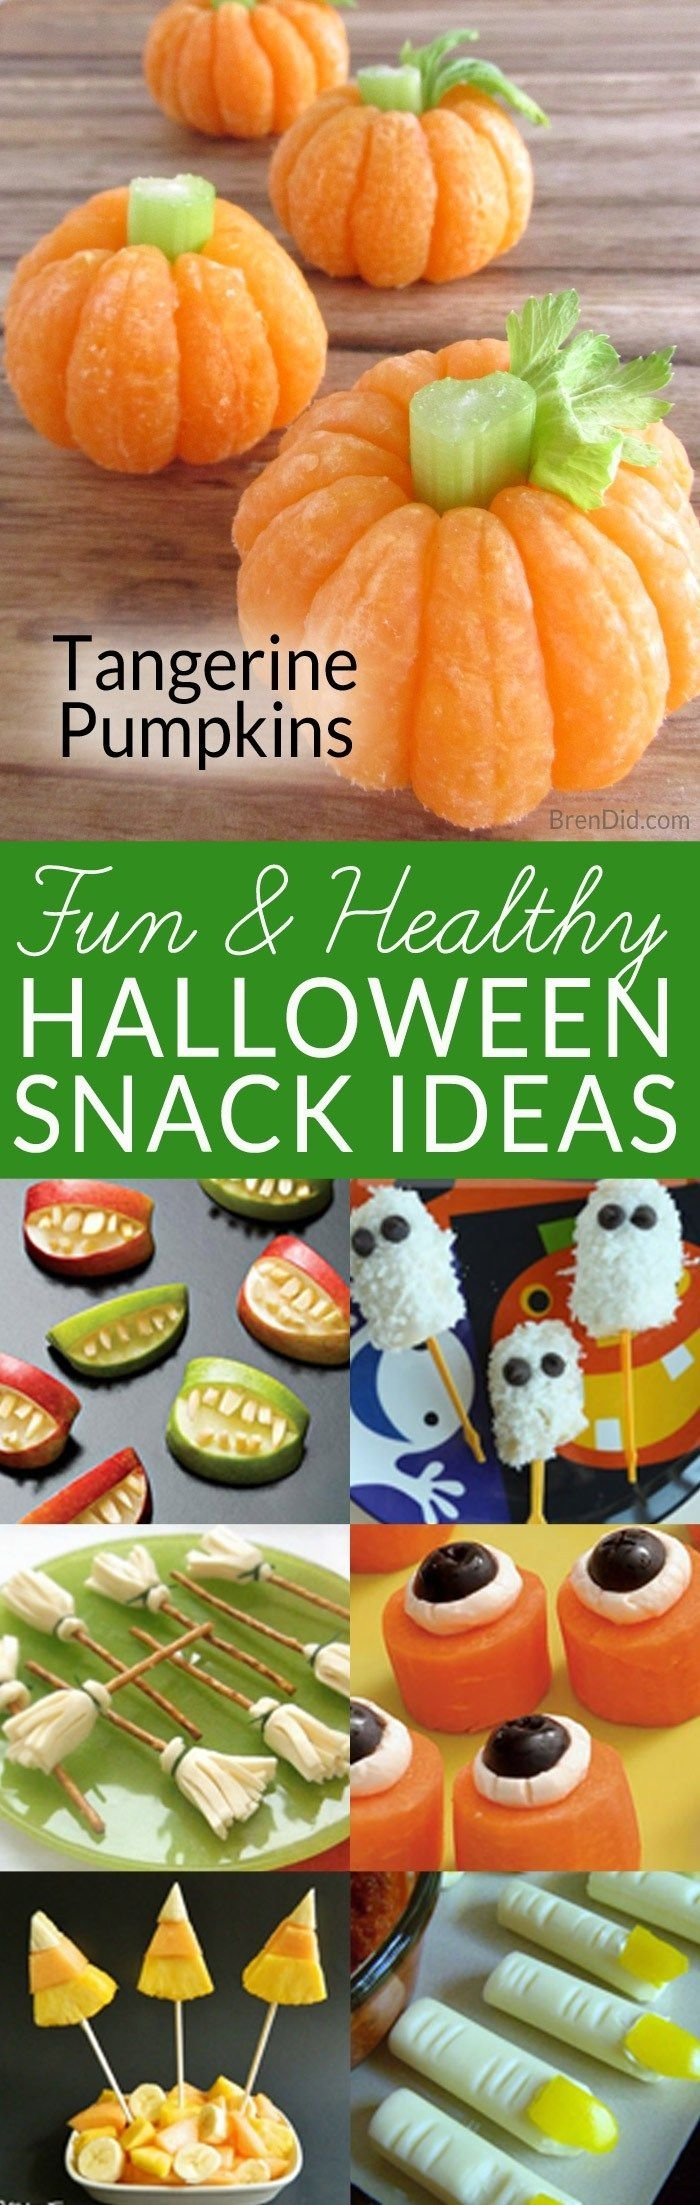 10 Most Recommended Halloween Lunch Ideas For Kids 613 best halloween decor and recipe ideas images on pinterest 2 2021